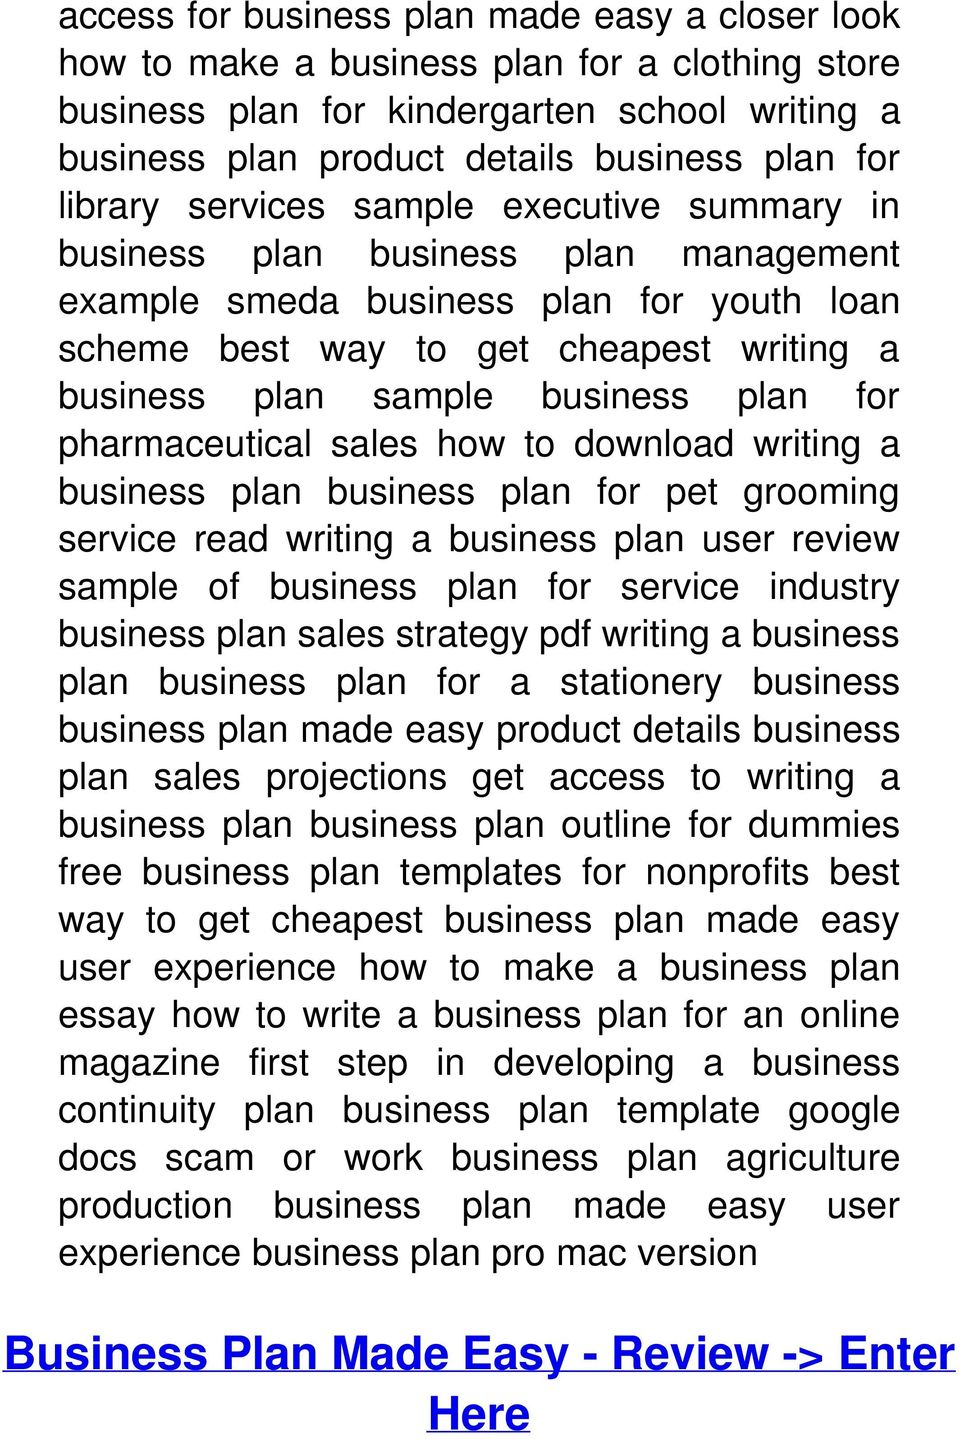 plan for pharmaceutical sales how to download writing a business plan business plan for pet grooming service read writing a business plan user review sample of business plan for service industry